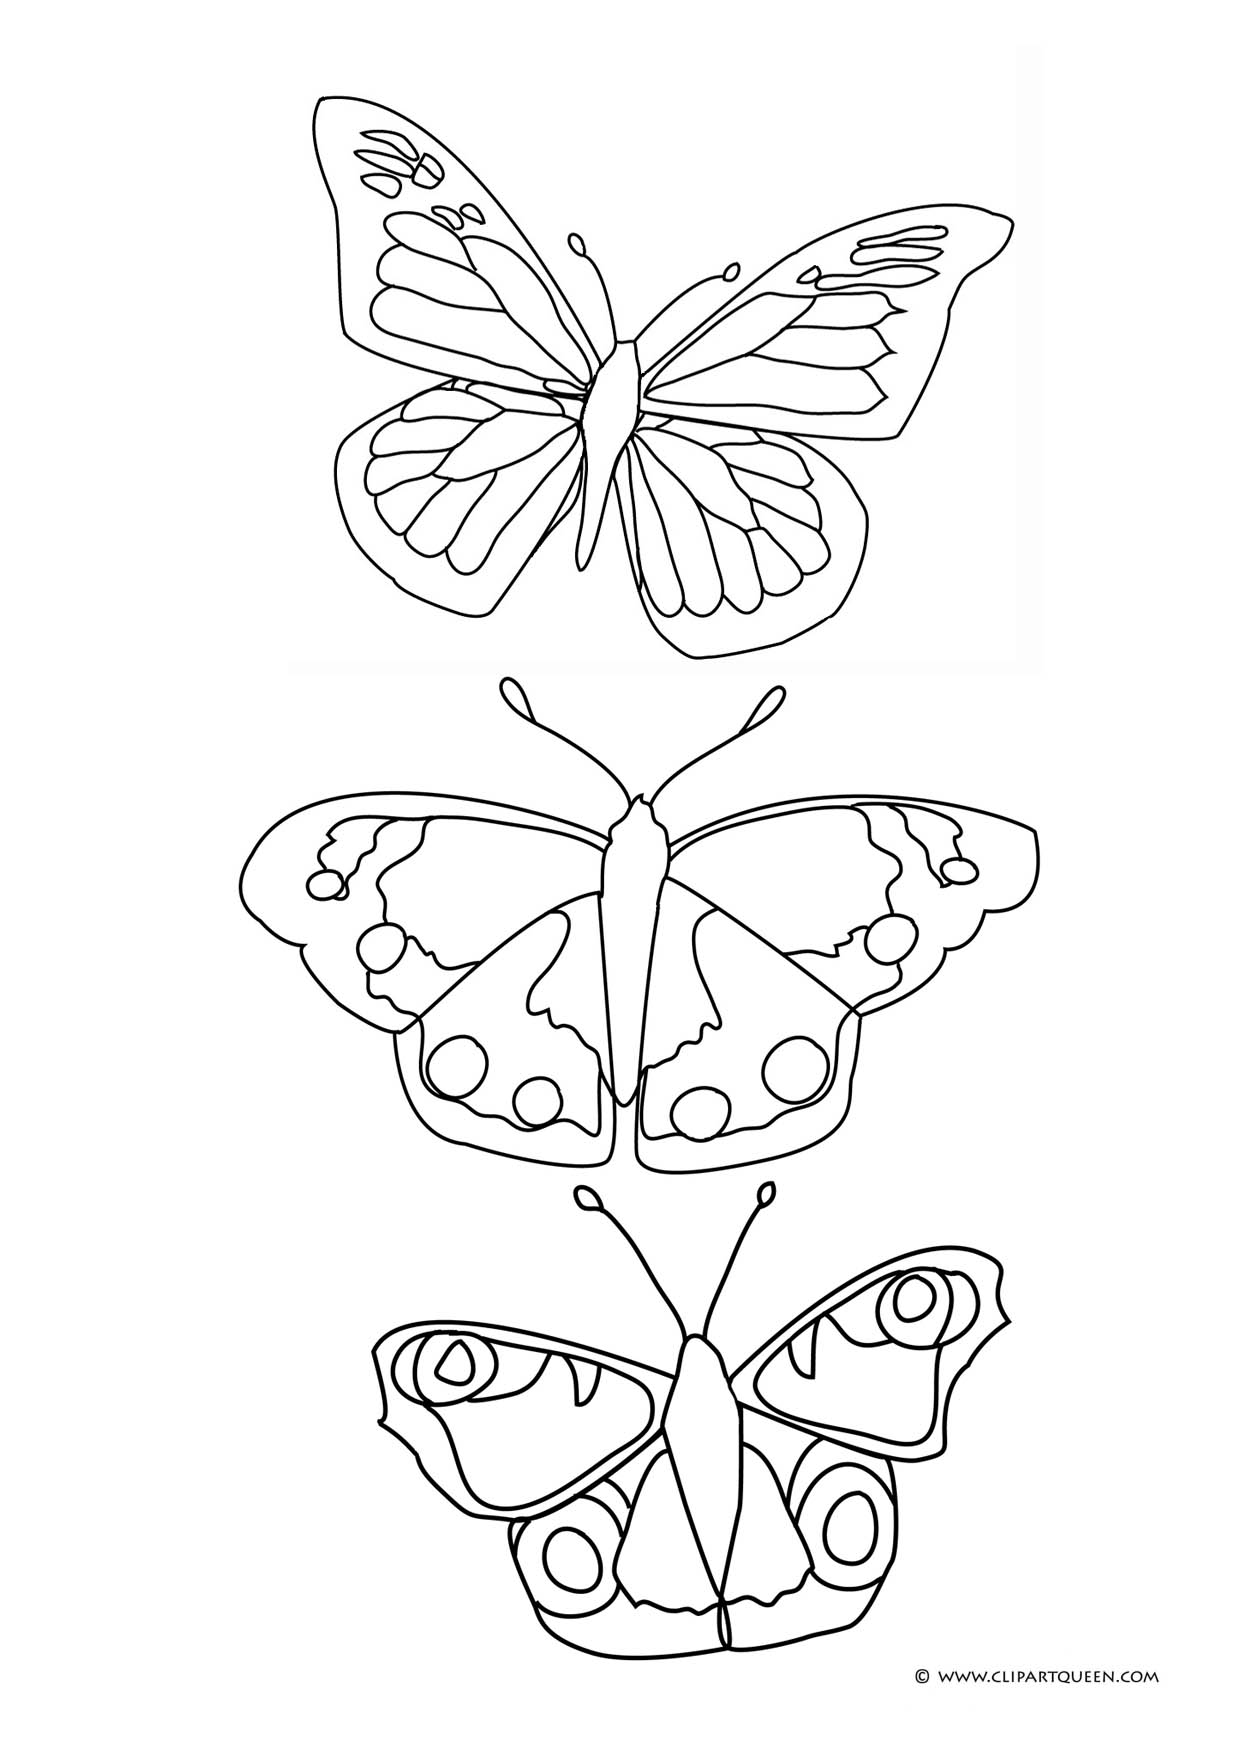 butterfly coloring book page printable butterfly coloring pages for kids cool2bkids butterfly coloring book page